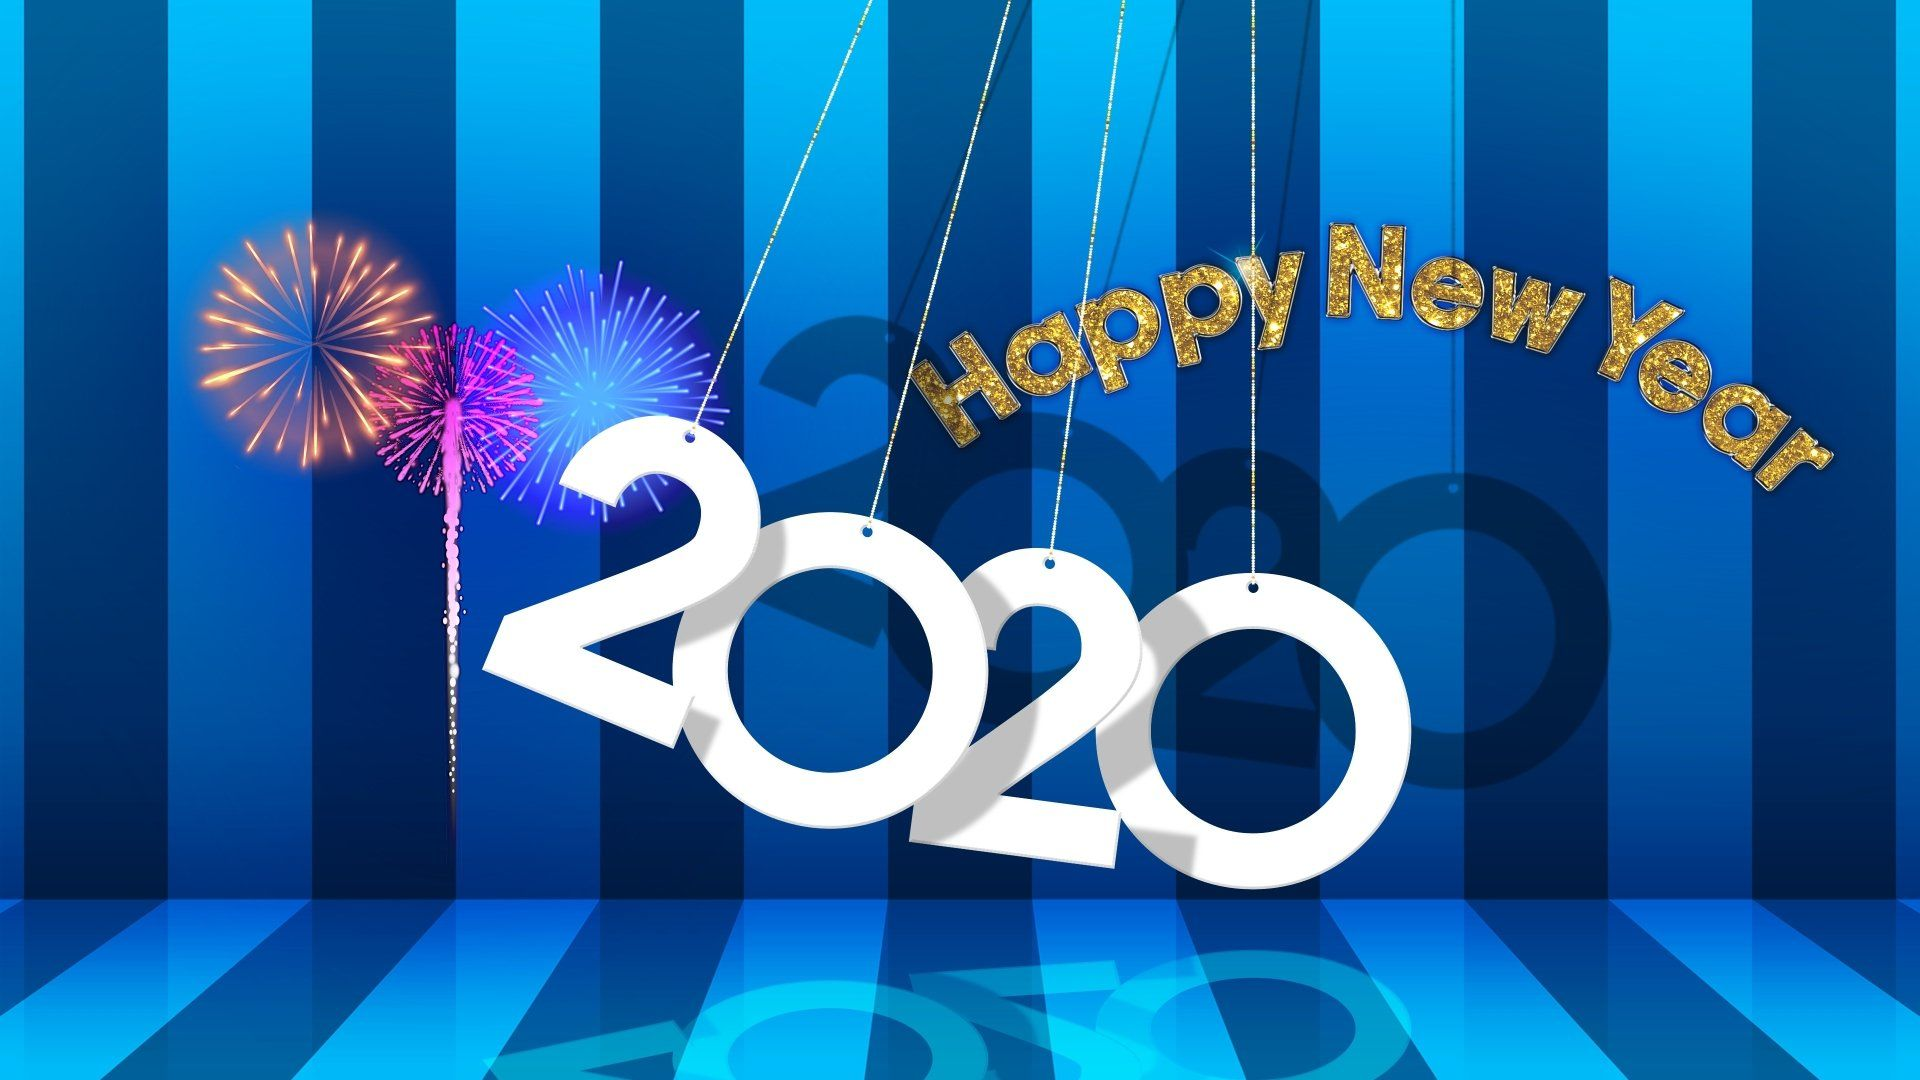 Happy New Year 2020 good wallpaper